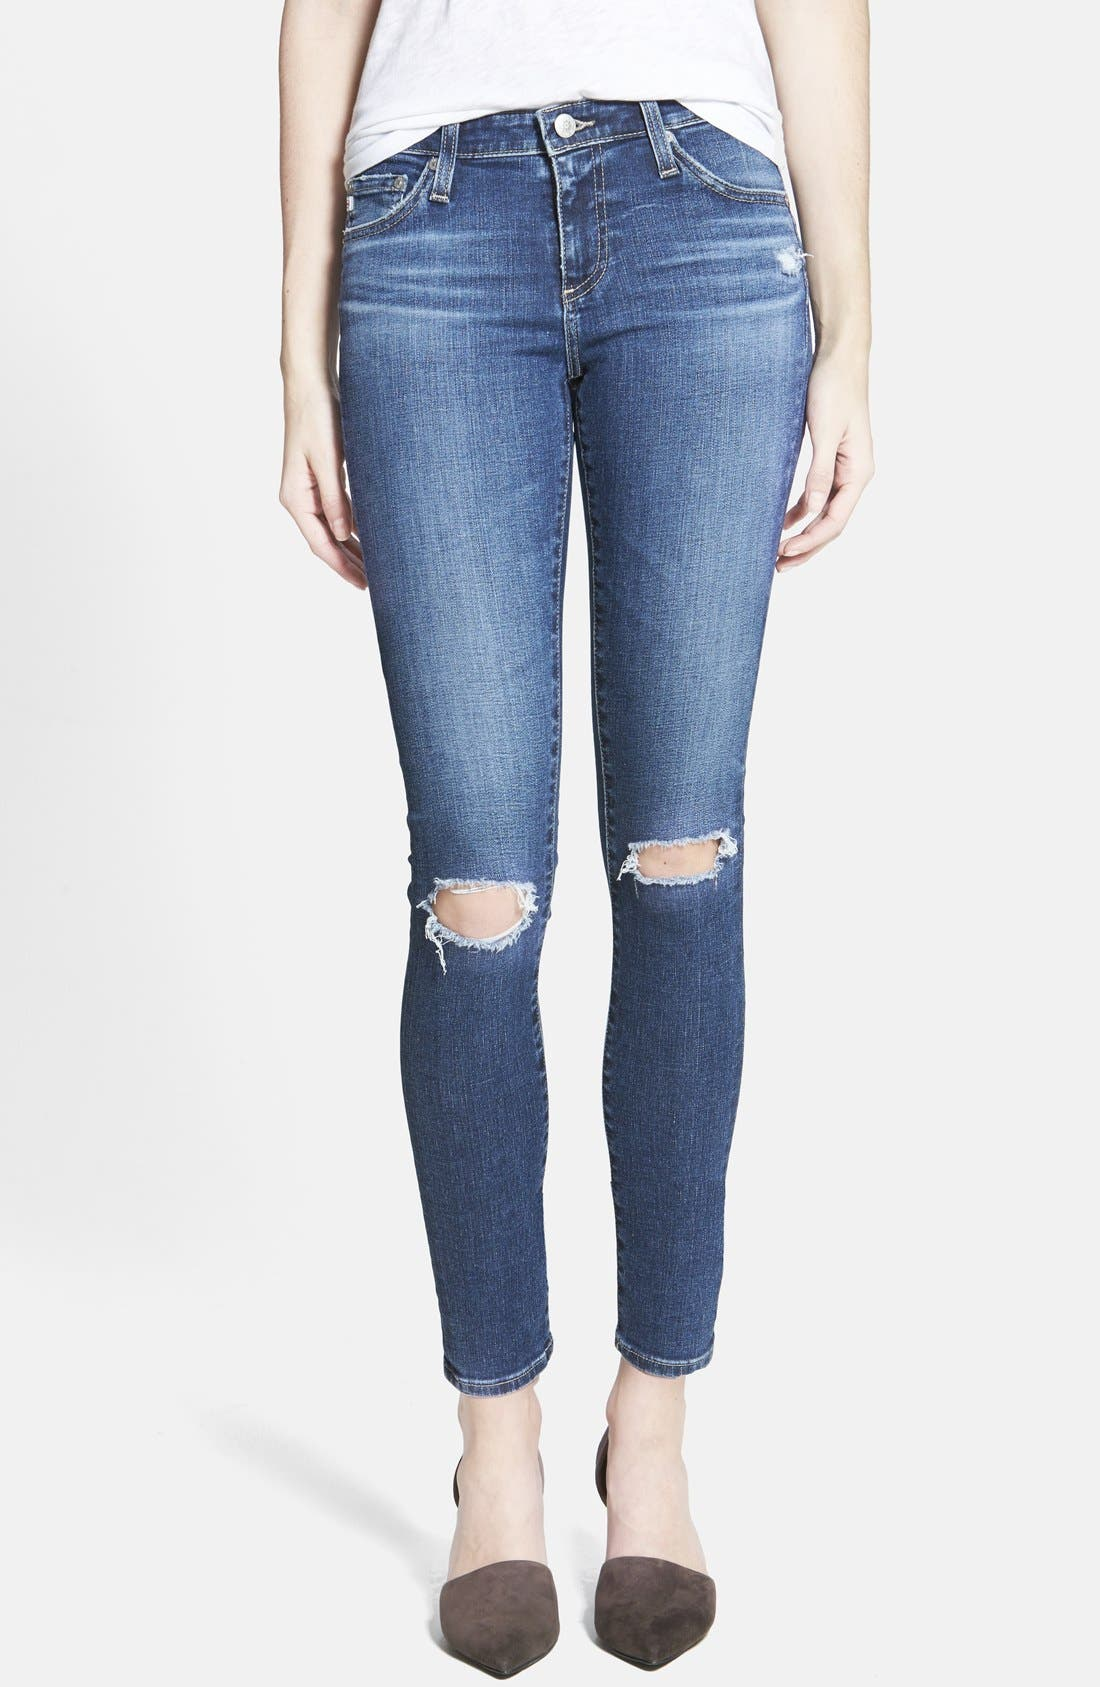 Alternate Image 1 Selected - Alexa Chung for AG 'The Legging' Ankle Jeans (11 Year Dreamer)